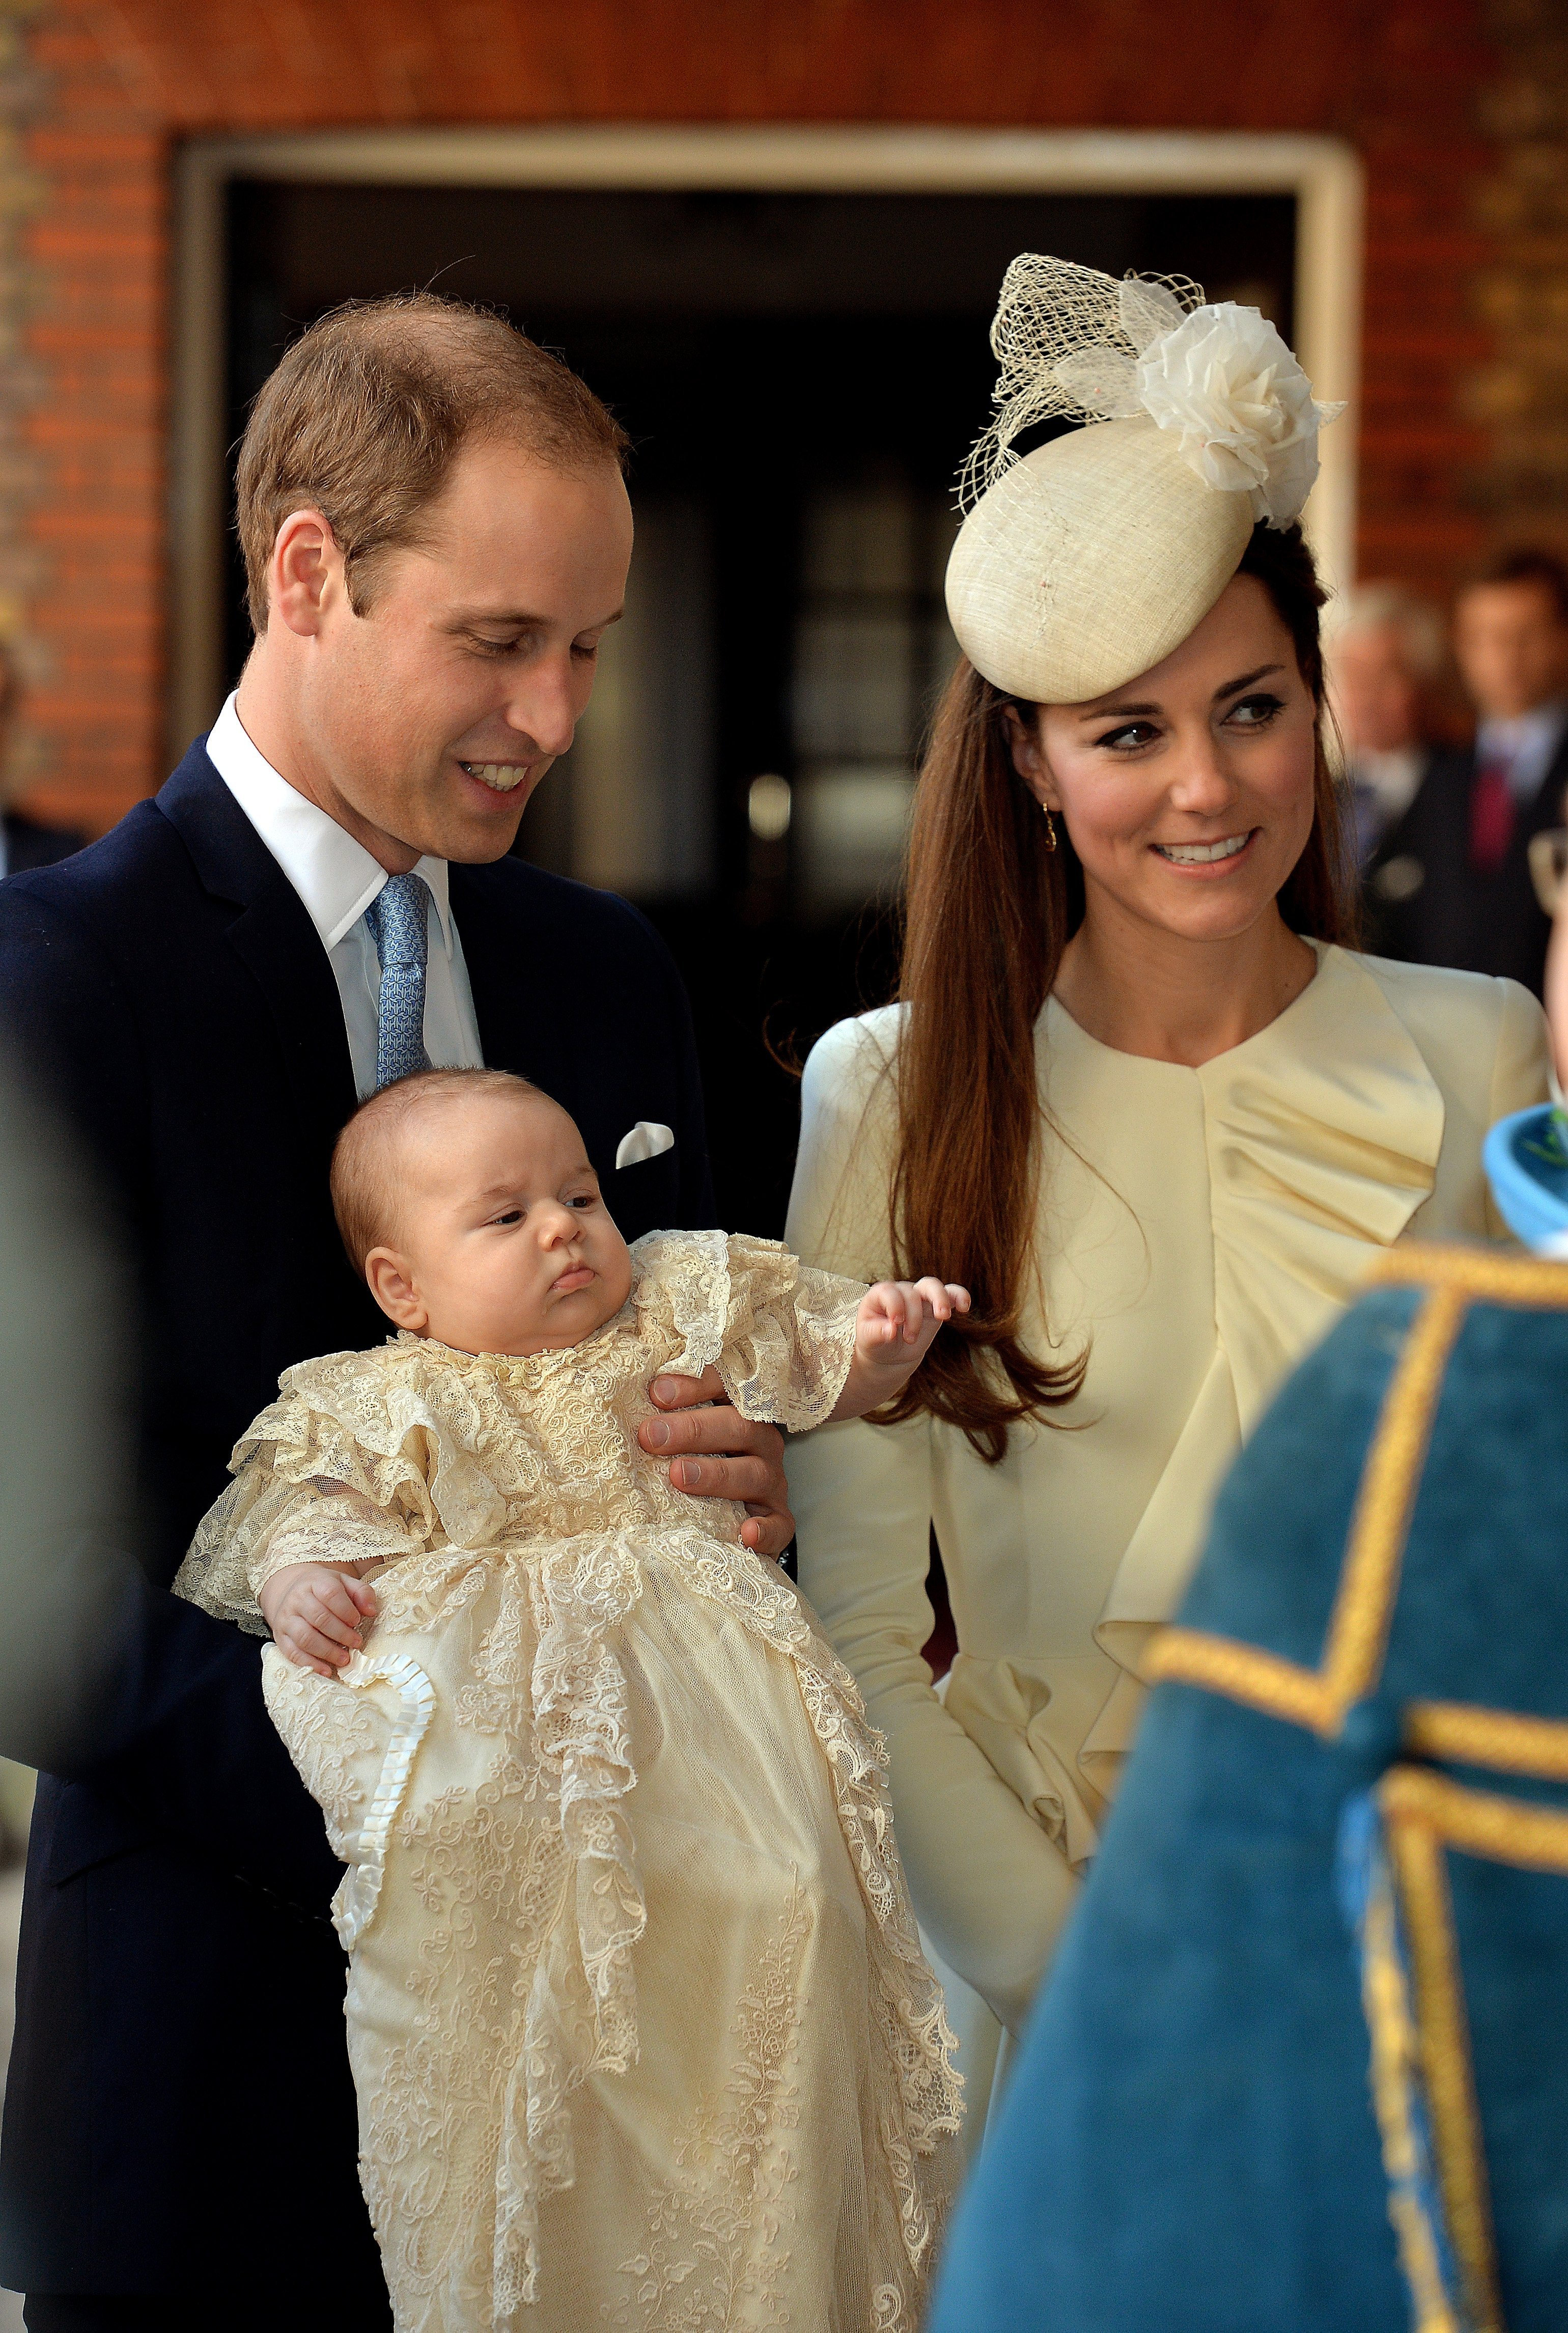 Prince George wearing the replice of the royal christening gown with Prince William and Kate Middleton at St James's Palace in London, England | Photo: Getty Images